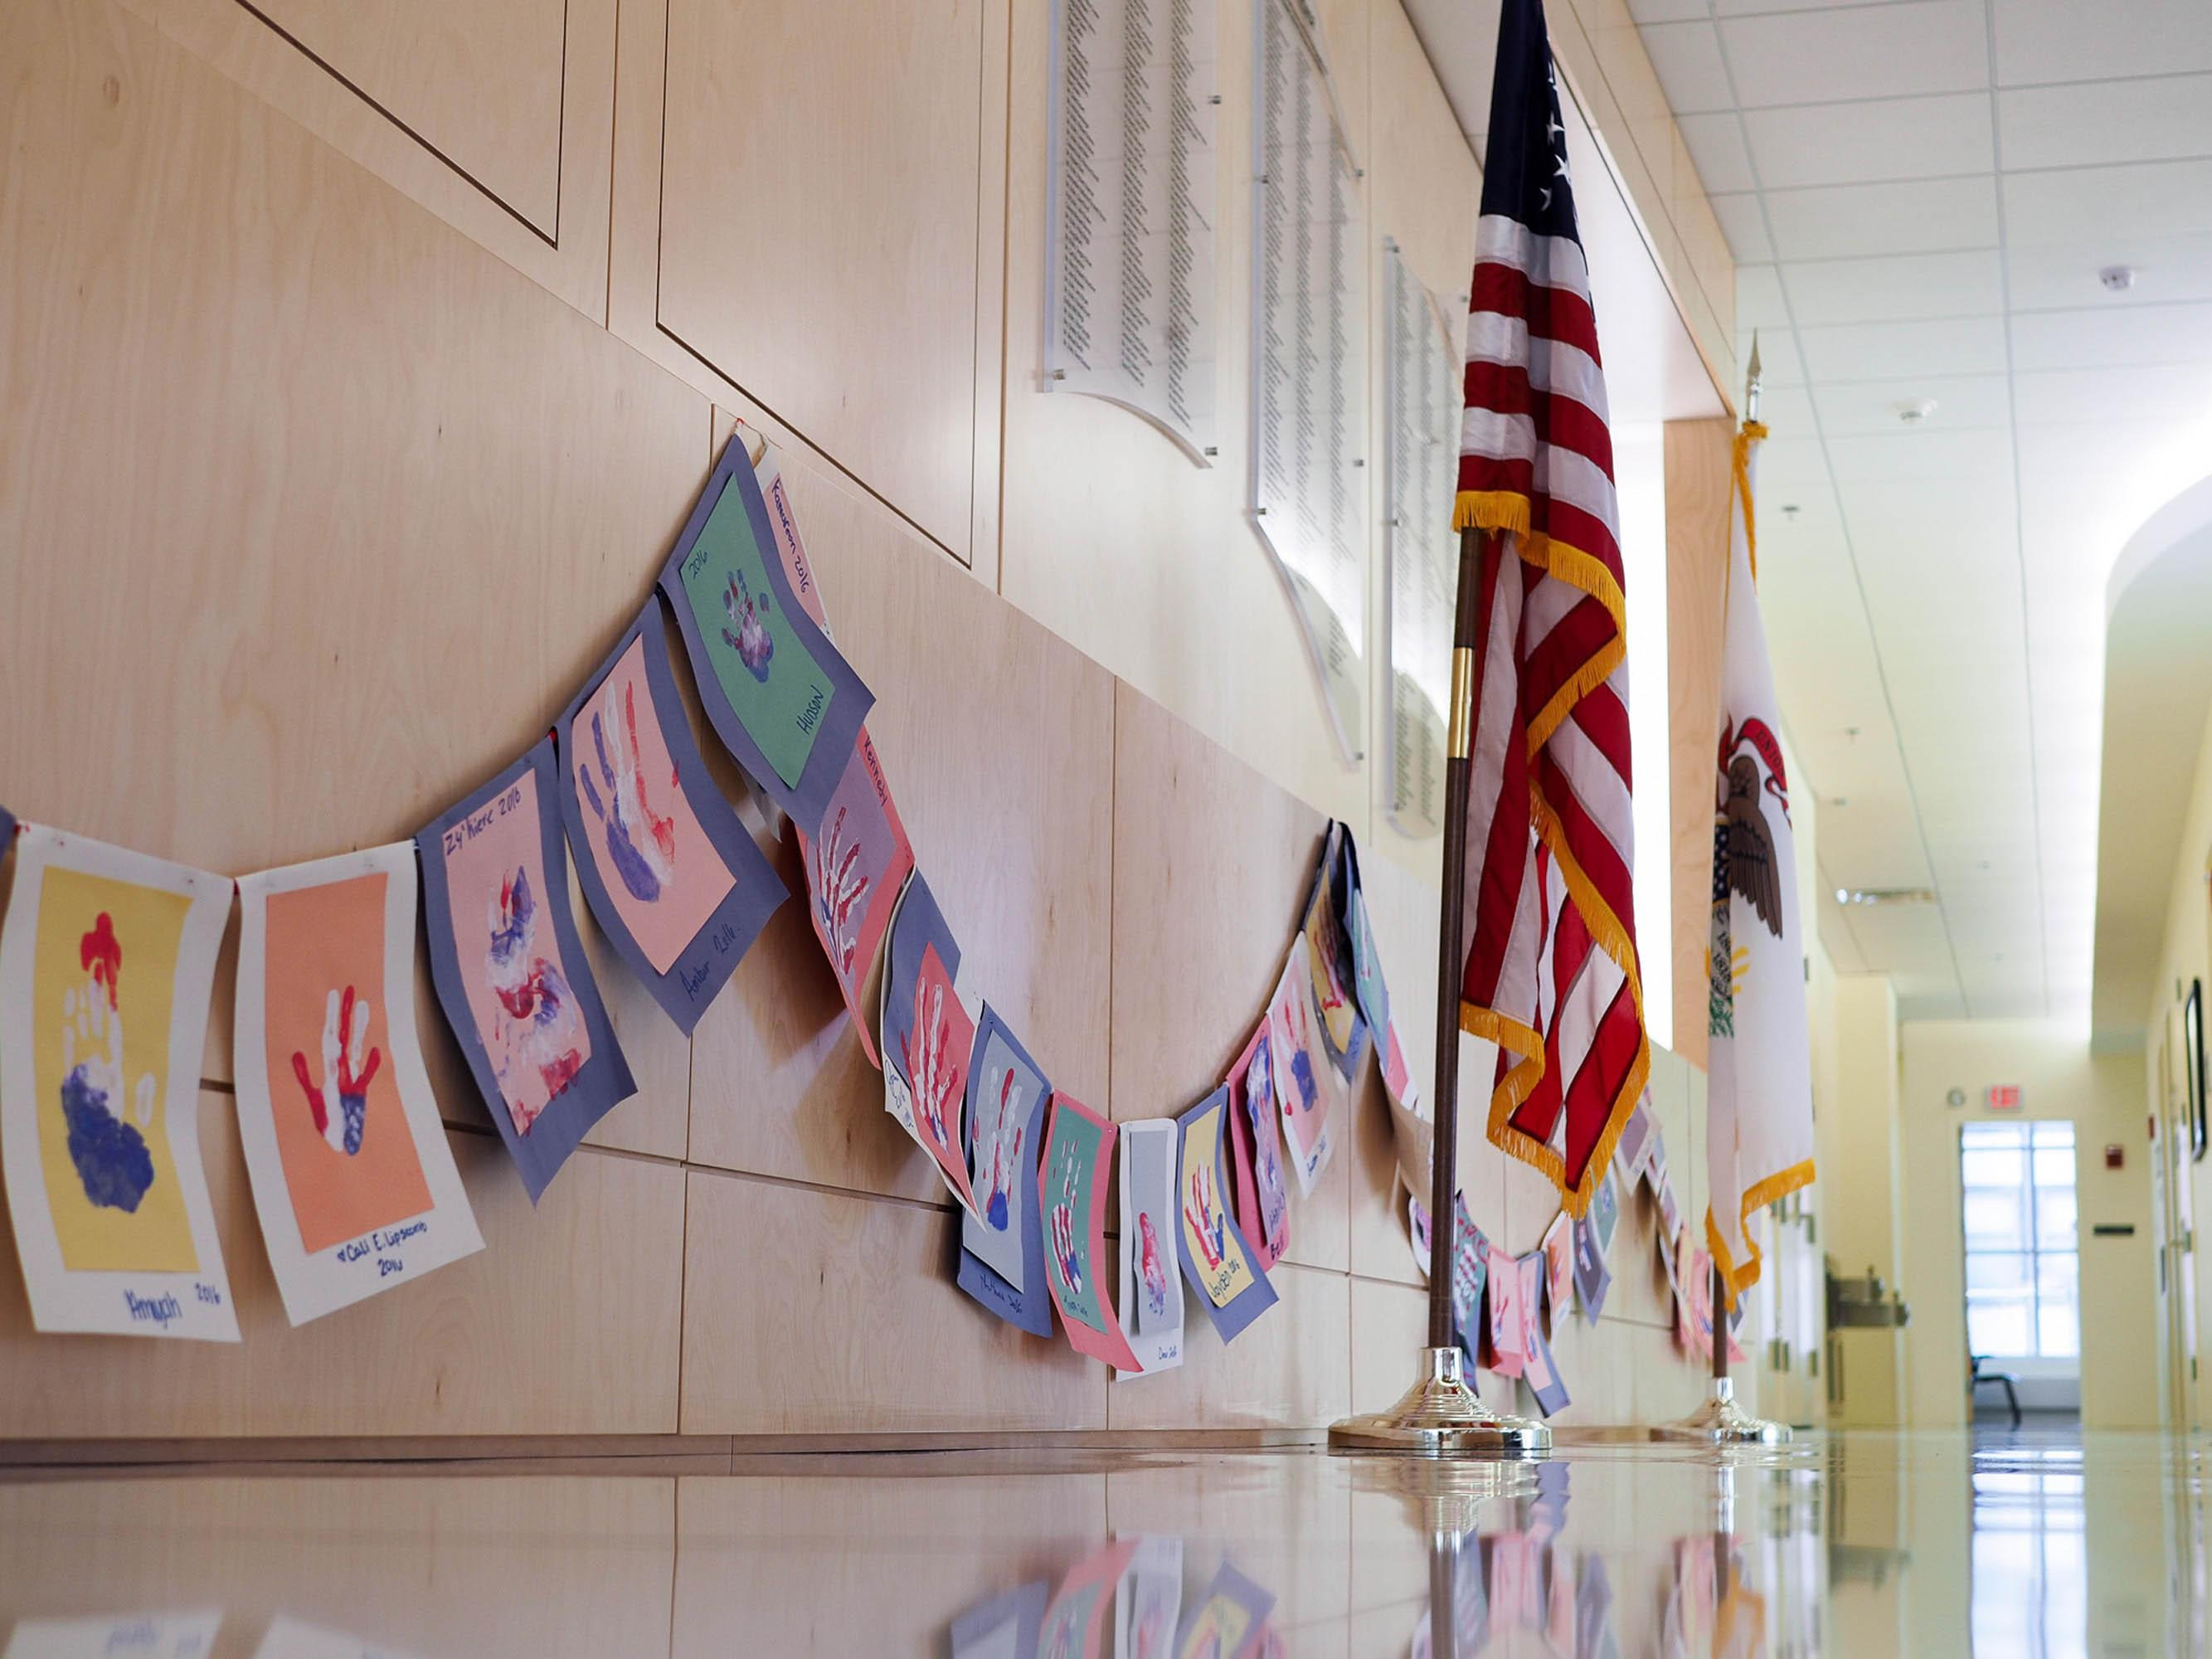 The Veteran and United States Flag flank the Wall Of Honor found in the entrance of the Center for Wounded Veterans in Higher Education in Urbana, IL. August 16, 2016.